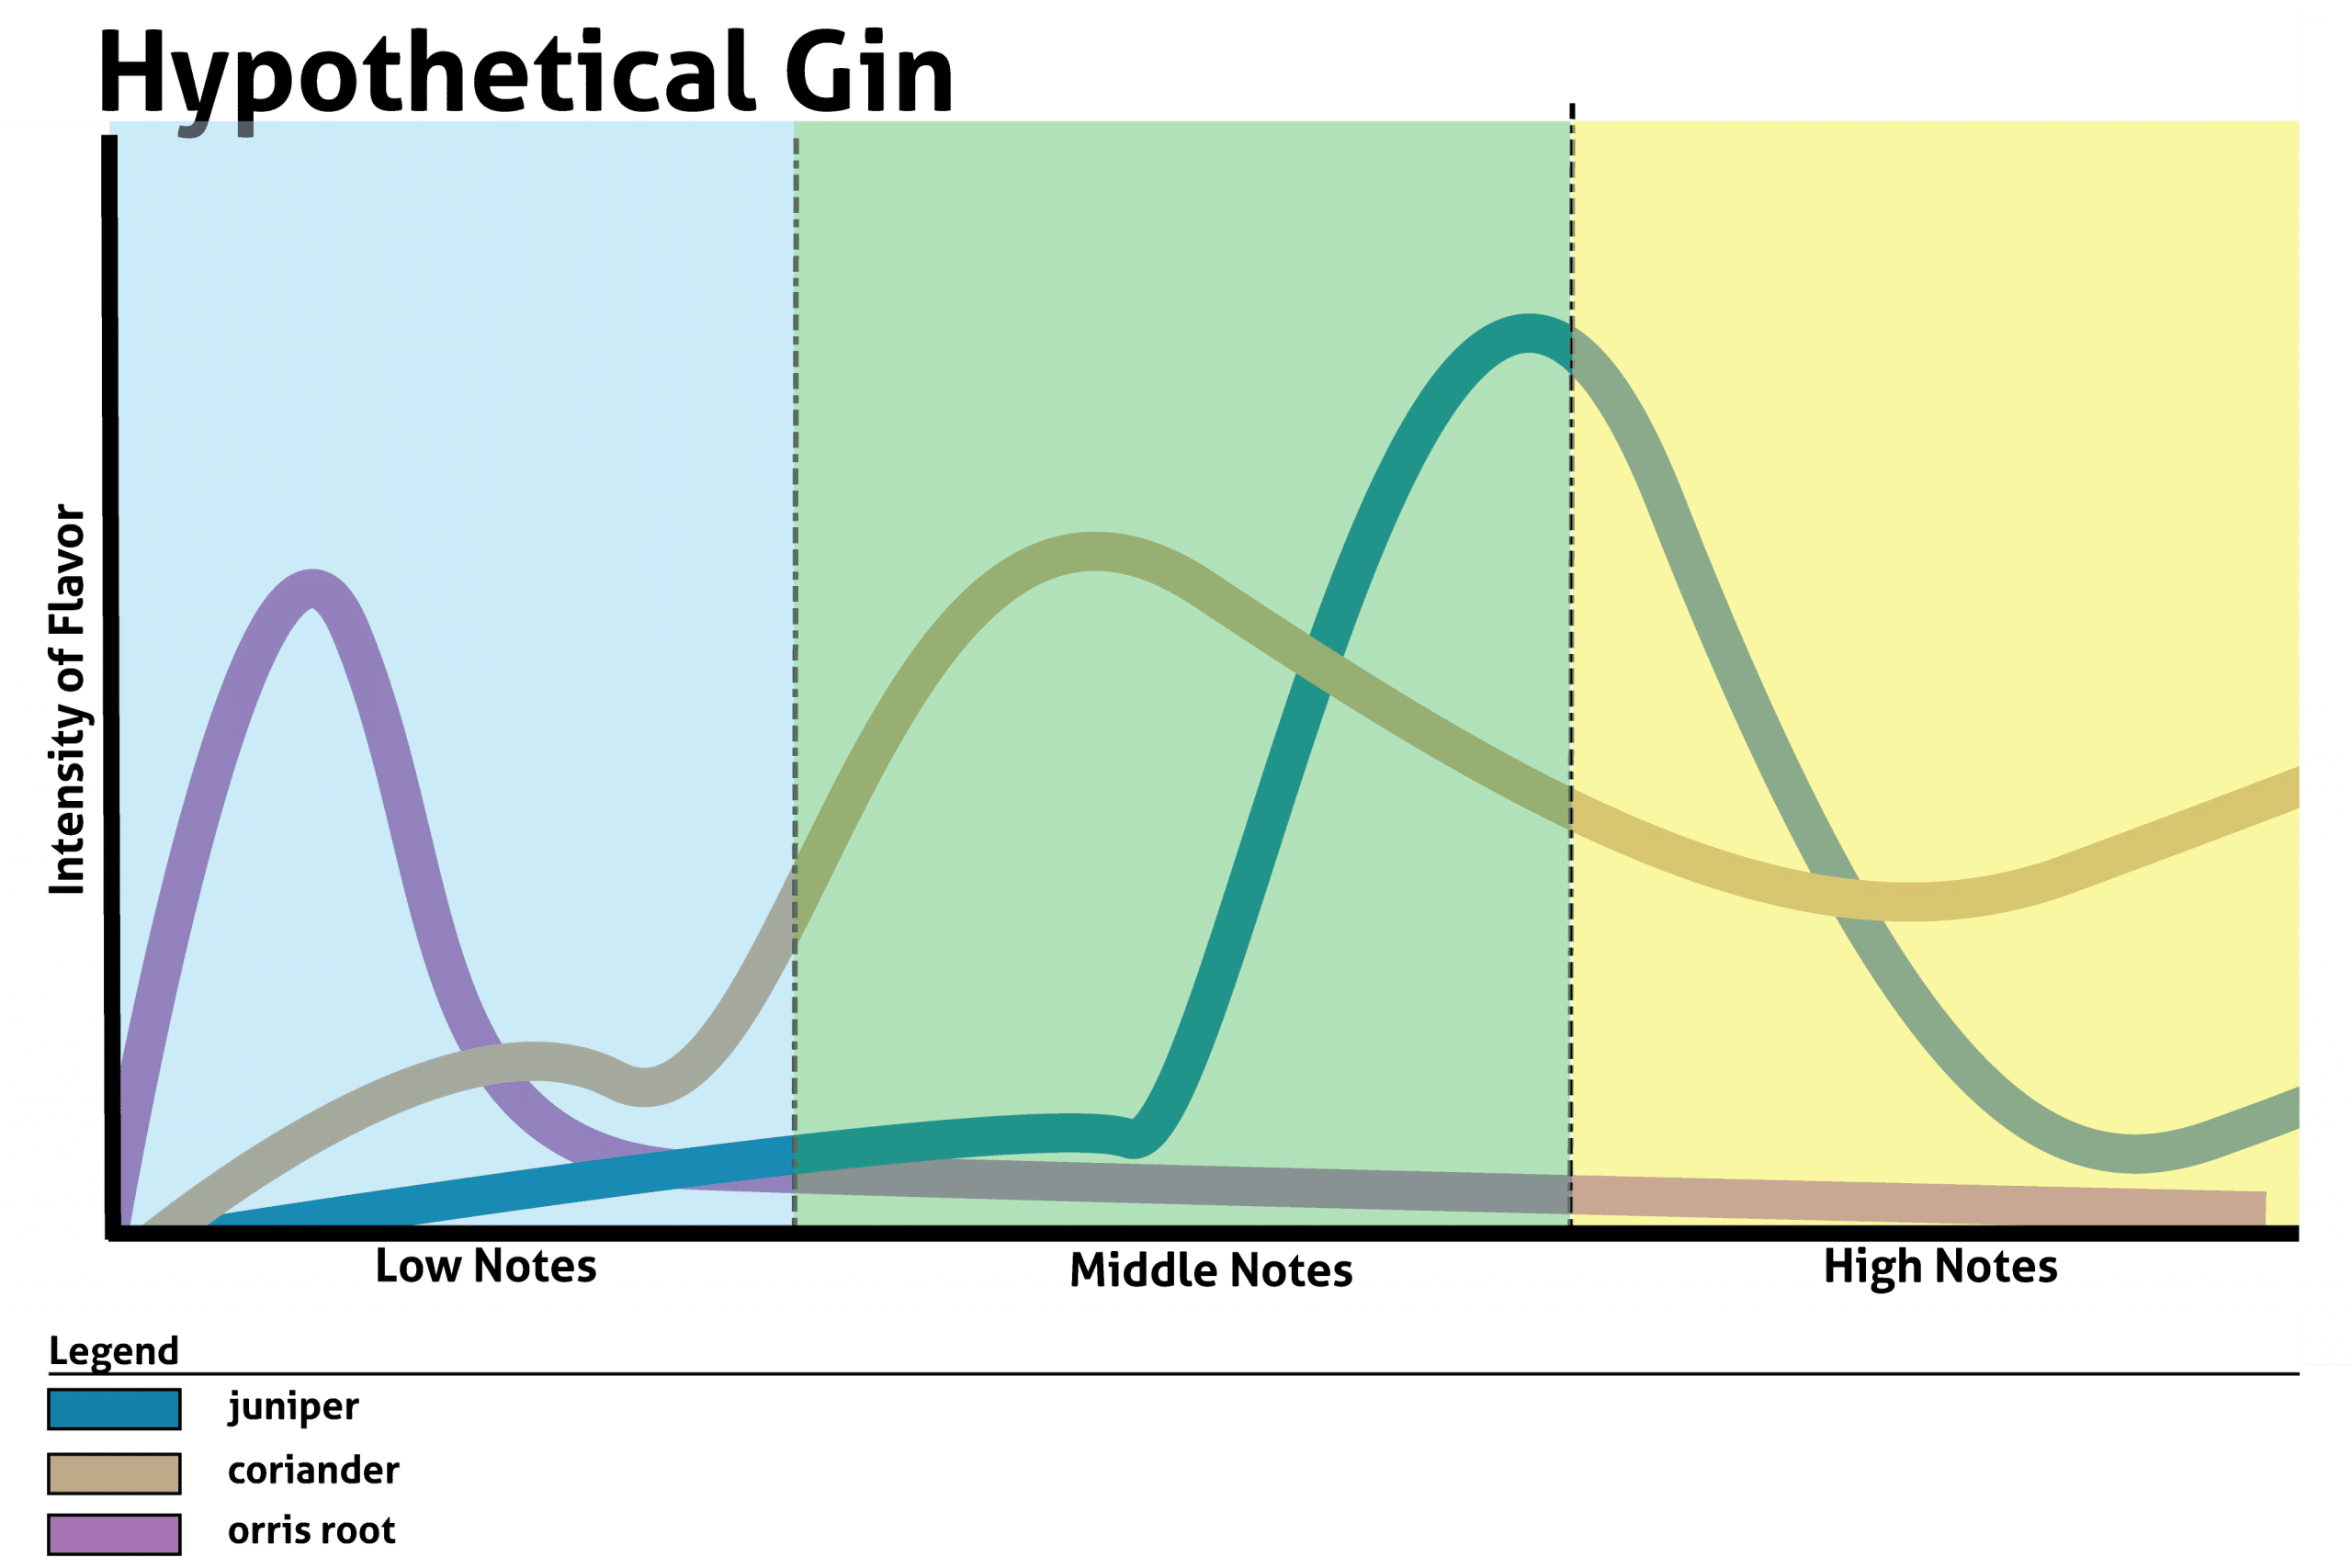 differing notes in a gin